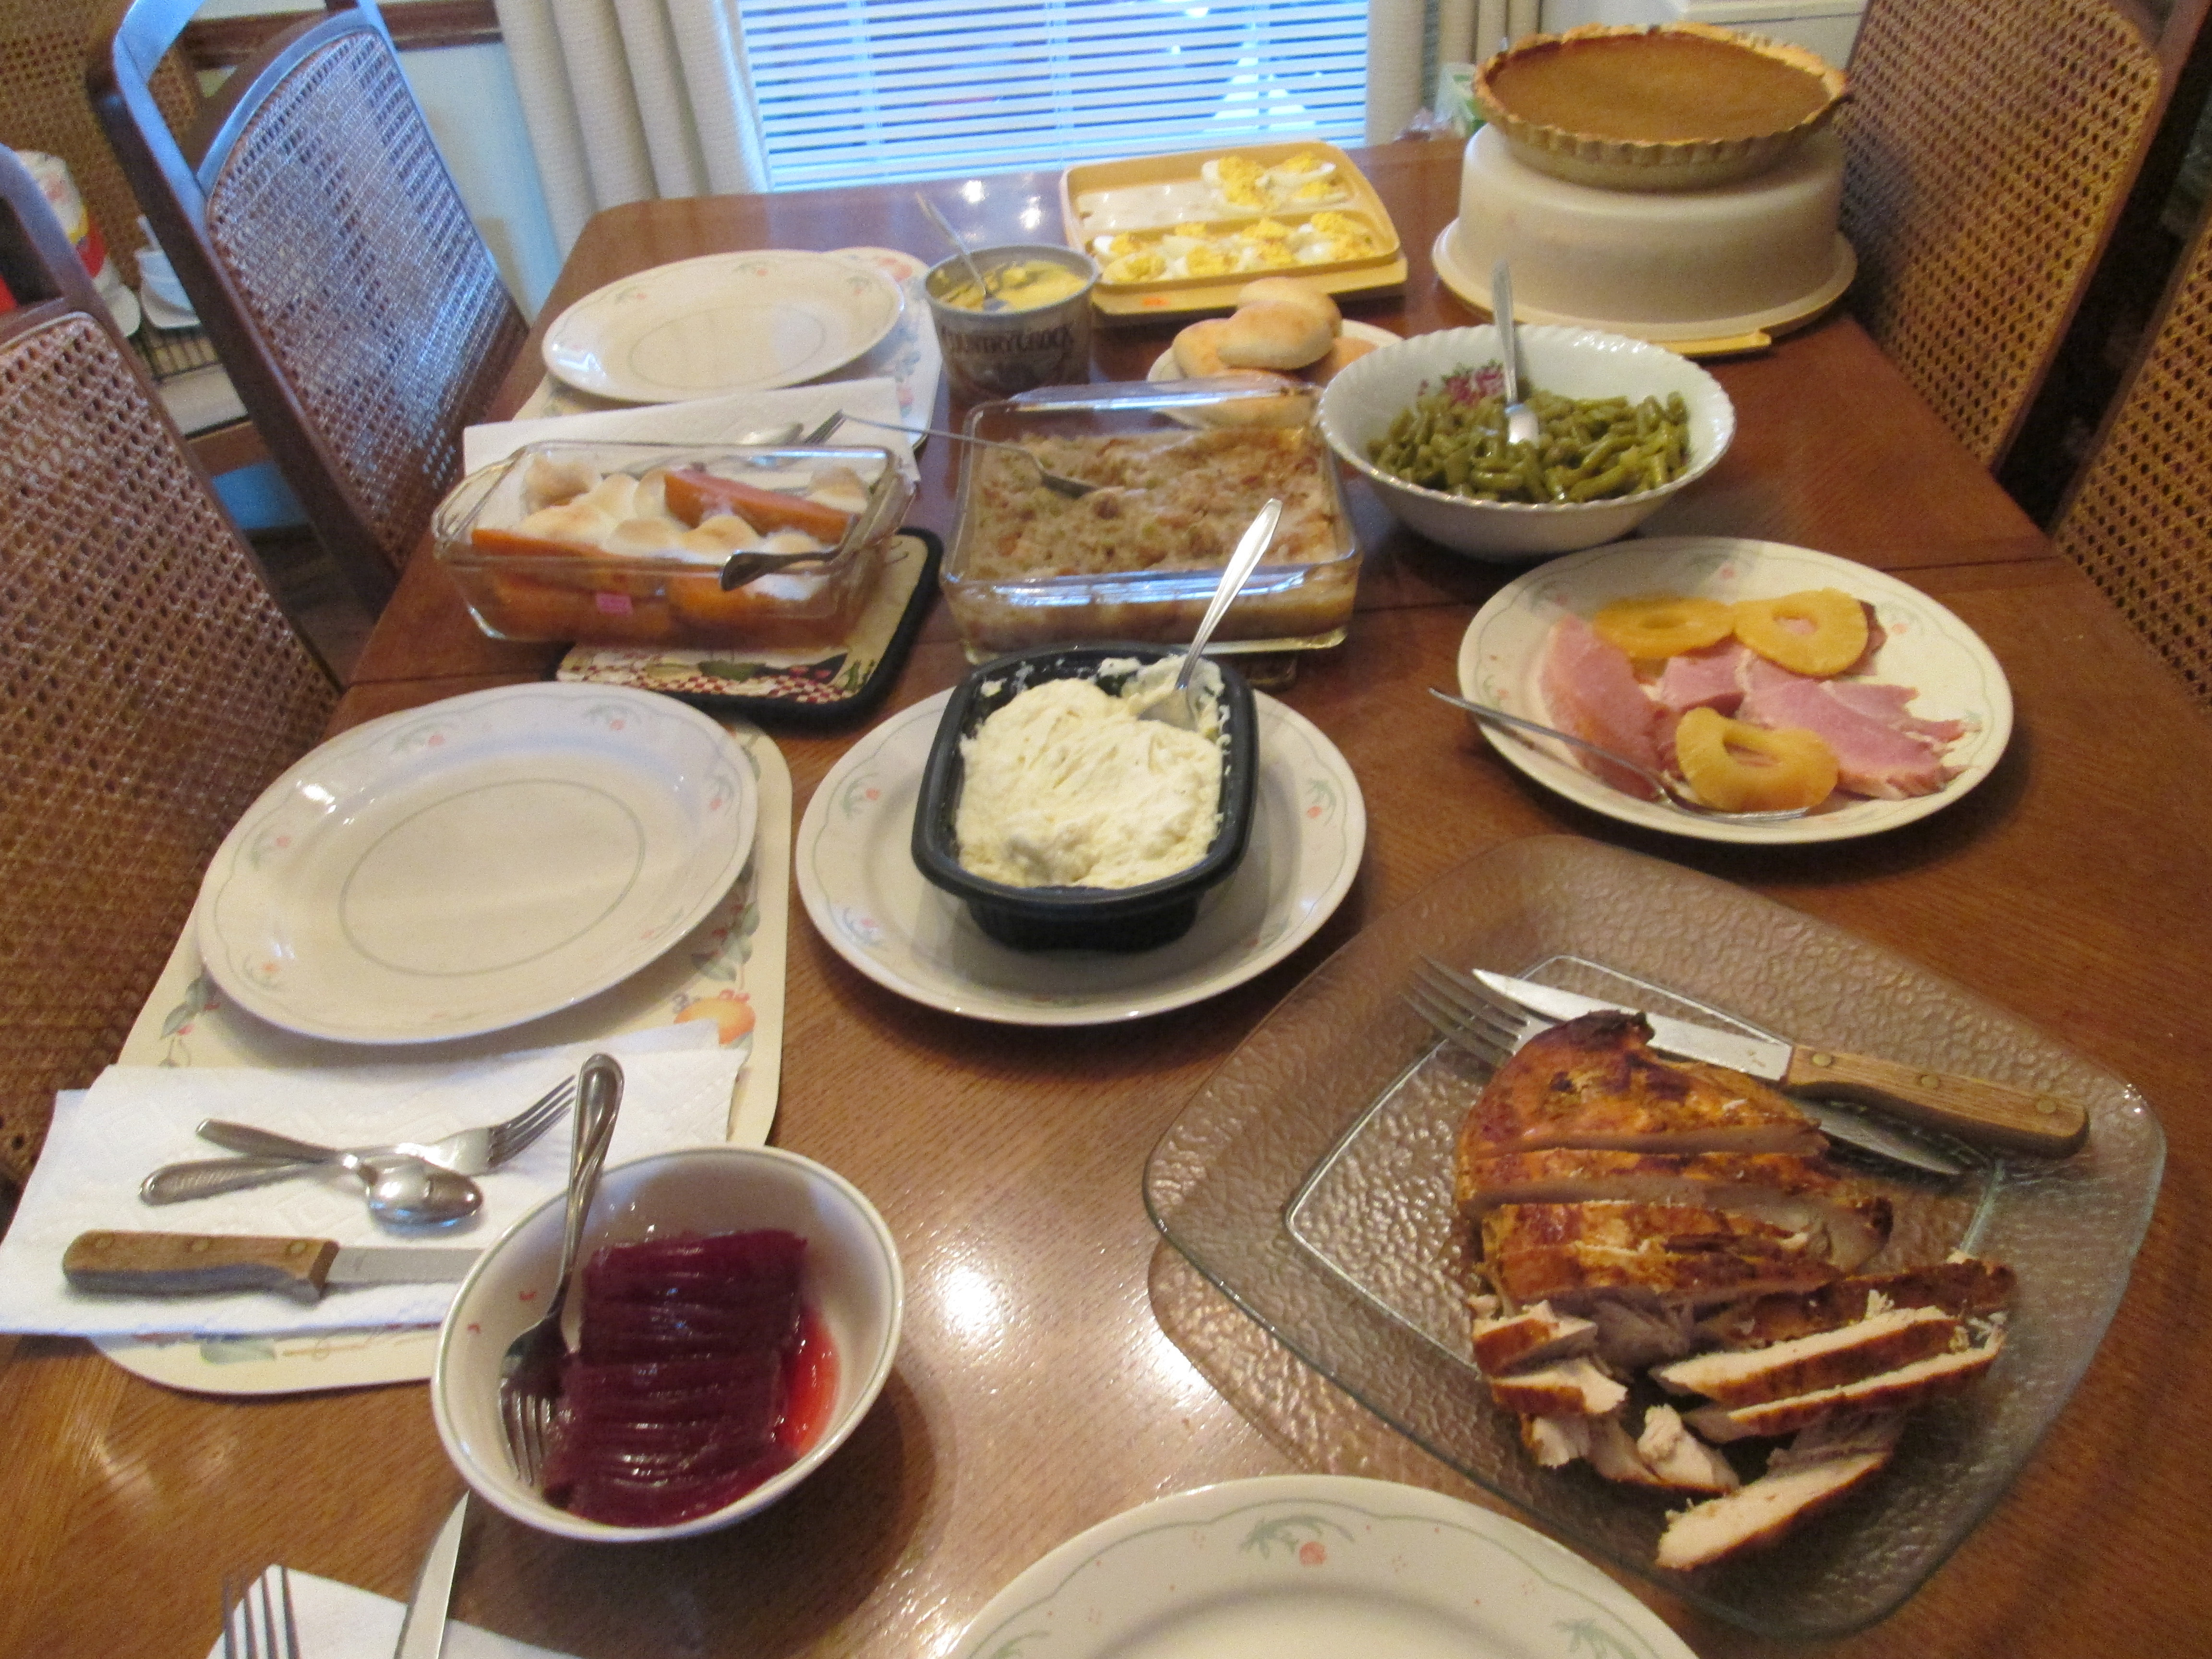 Kroger Christmas Meals To Go / Cook Take Out Or Dine Out Compare Thanksgiving Dinner Costs